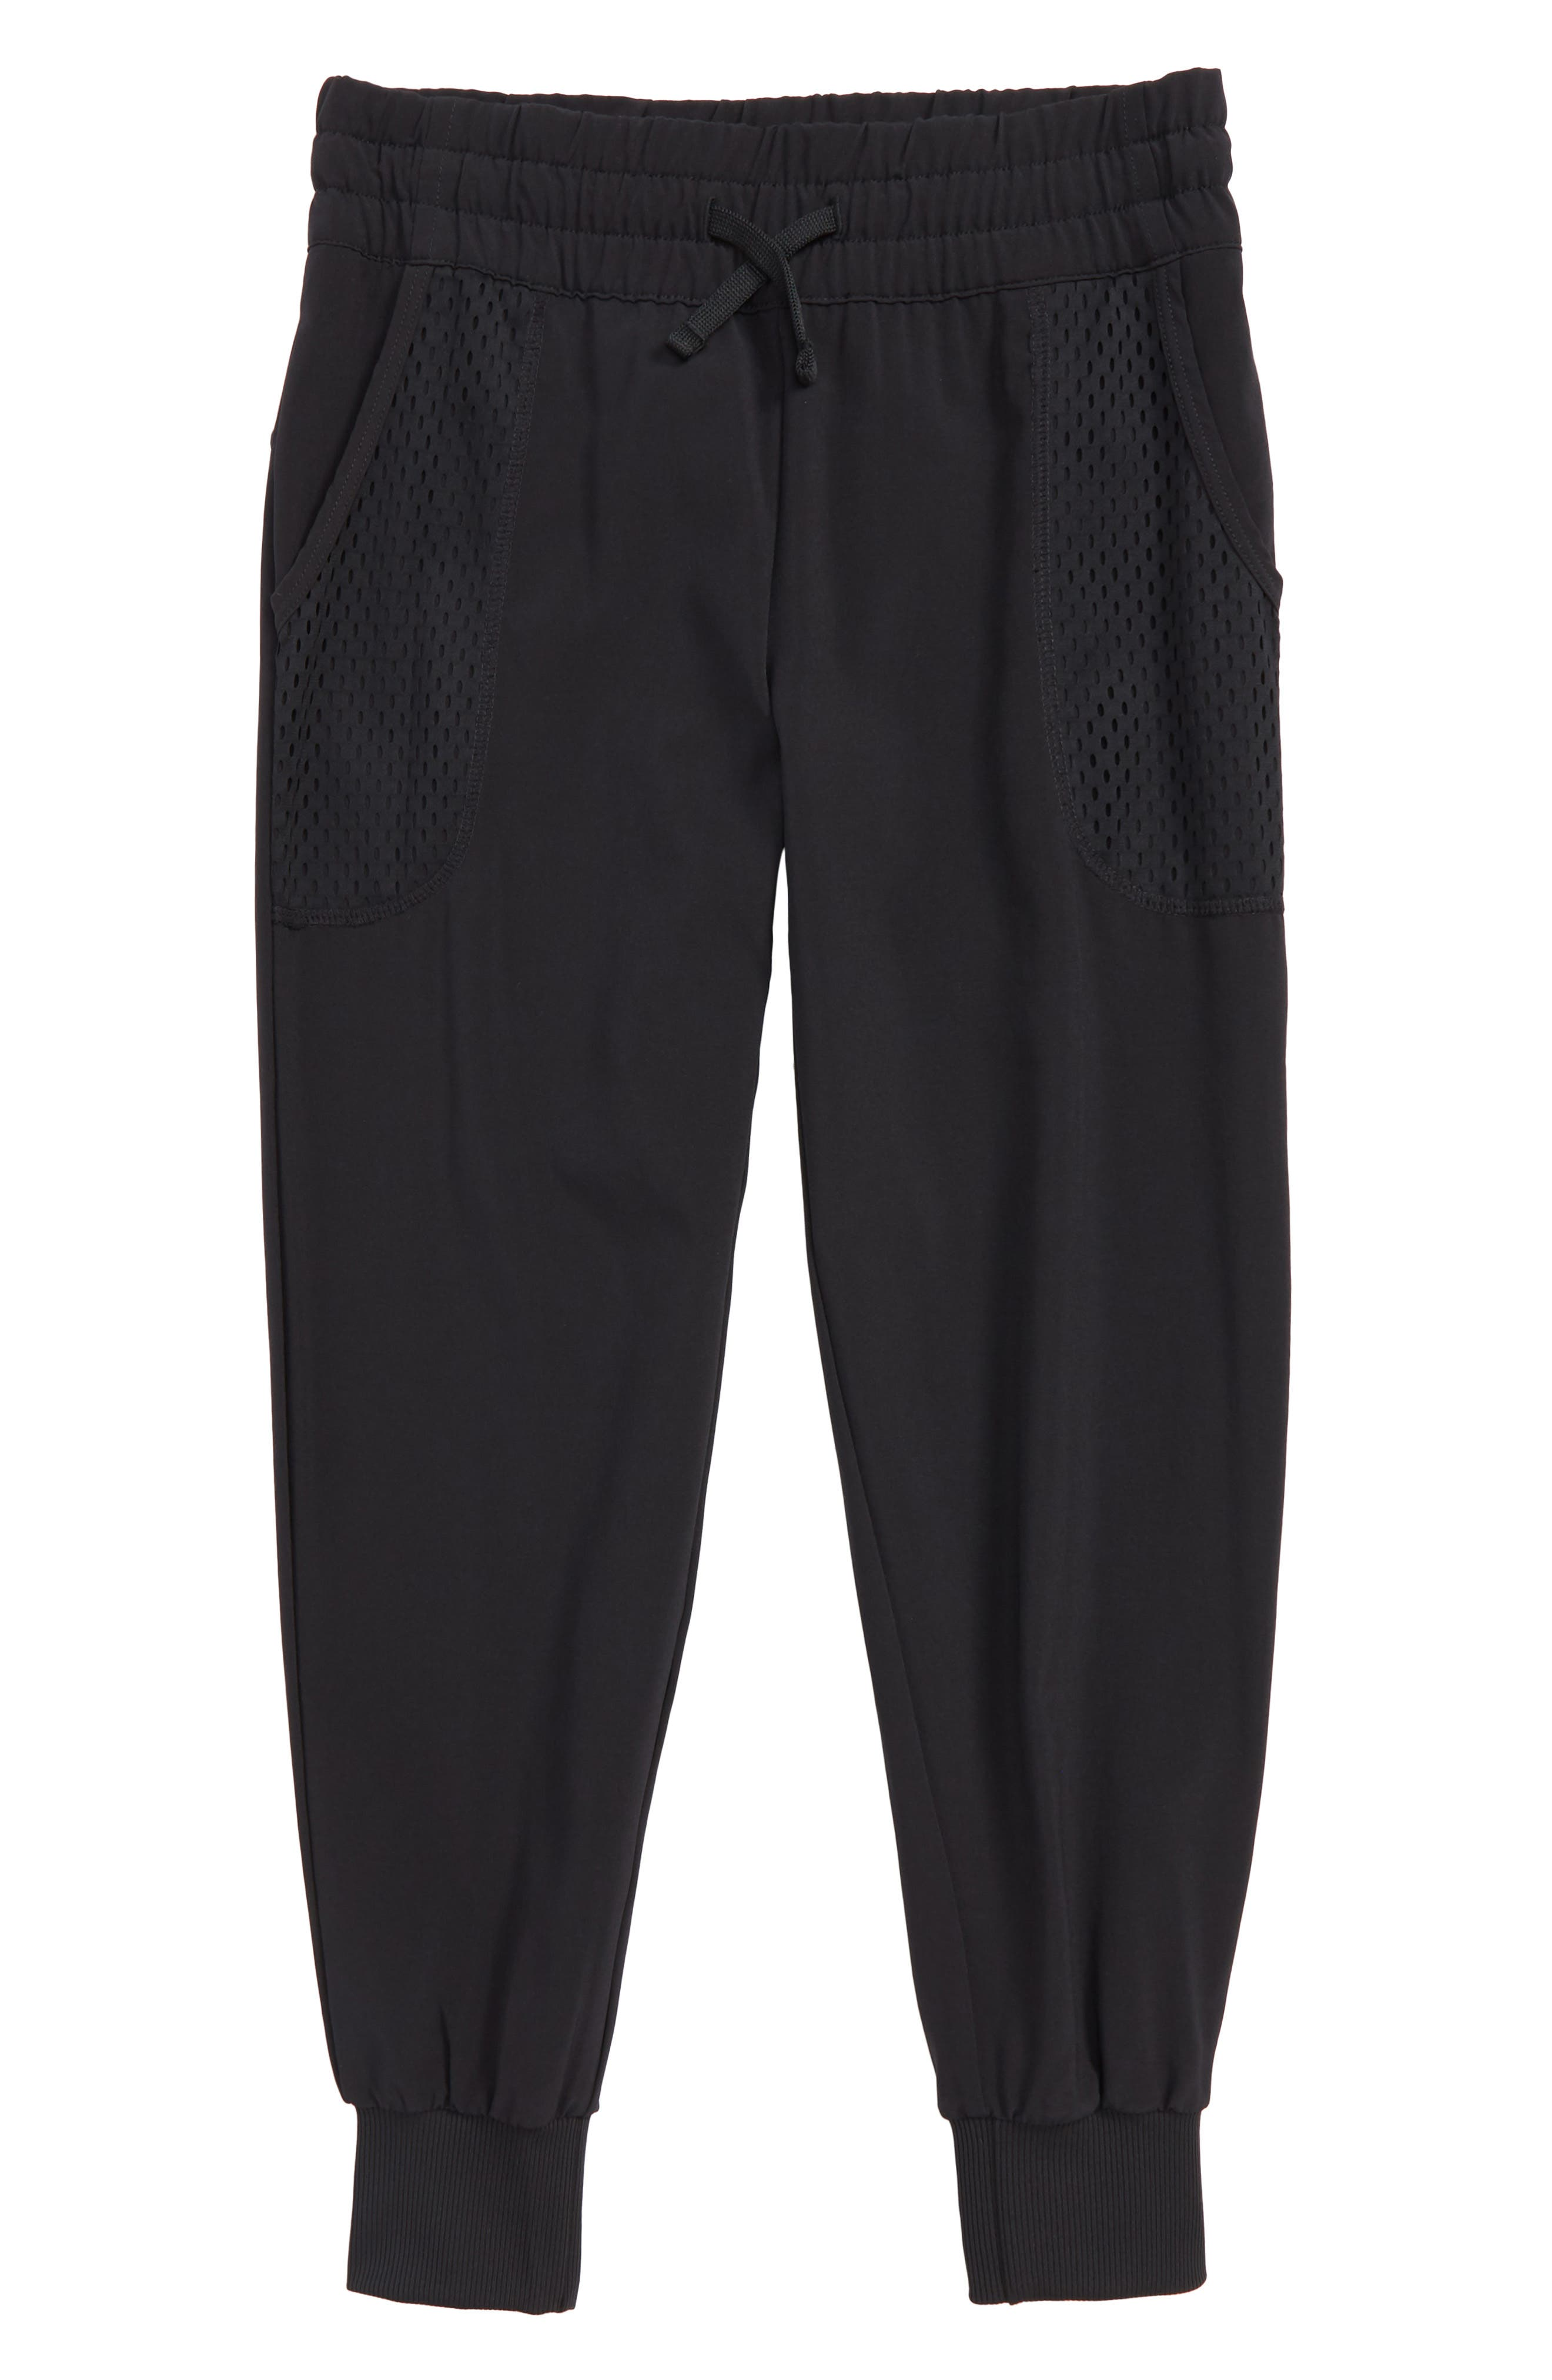 Mesh Pocket Jogger Pants,                         Main,                         color, 001